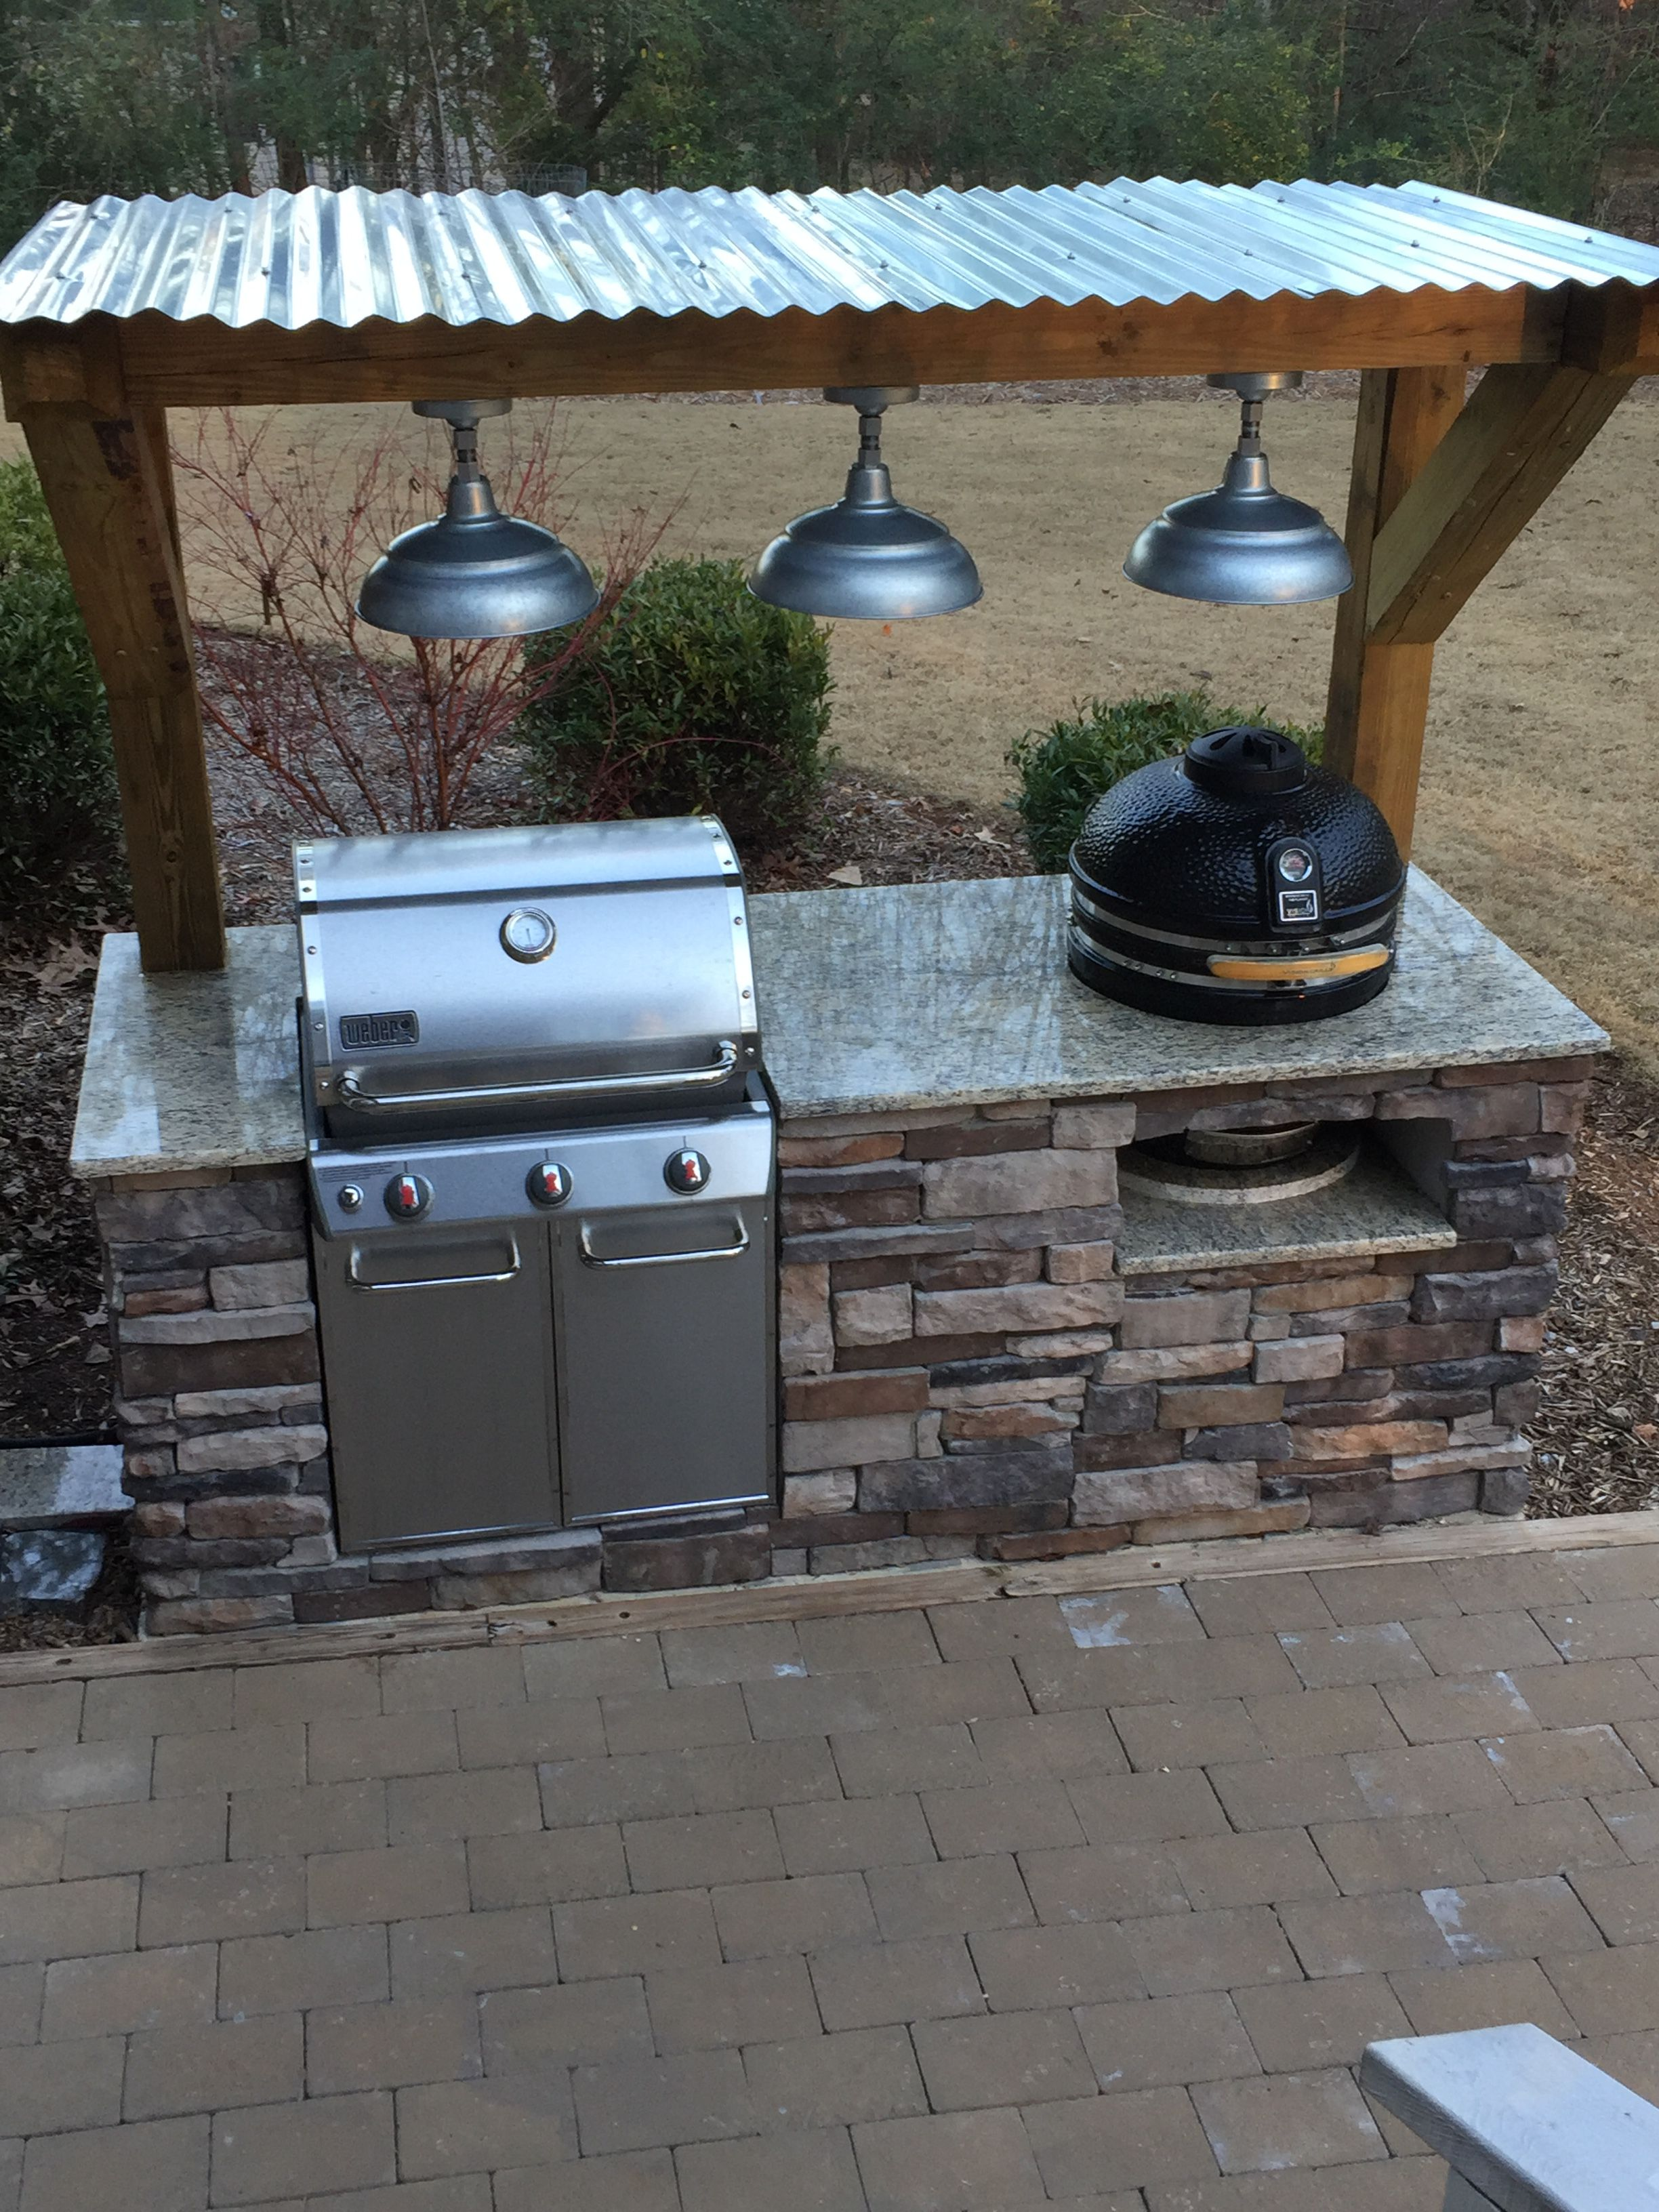 Outdoor Grill Stacked Stone Gas And Charcoal Outdoor Kitchen Patio Outdoor Grill Area Outdoor Grill Station